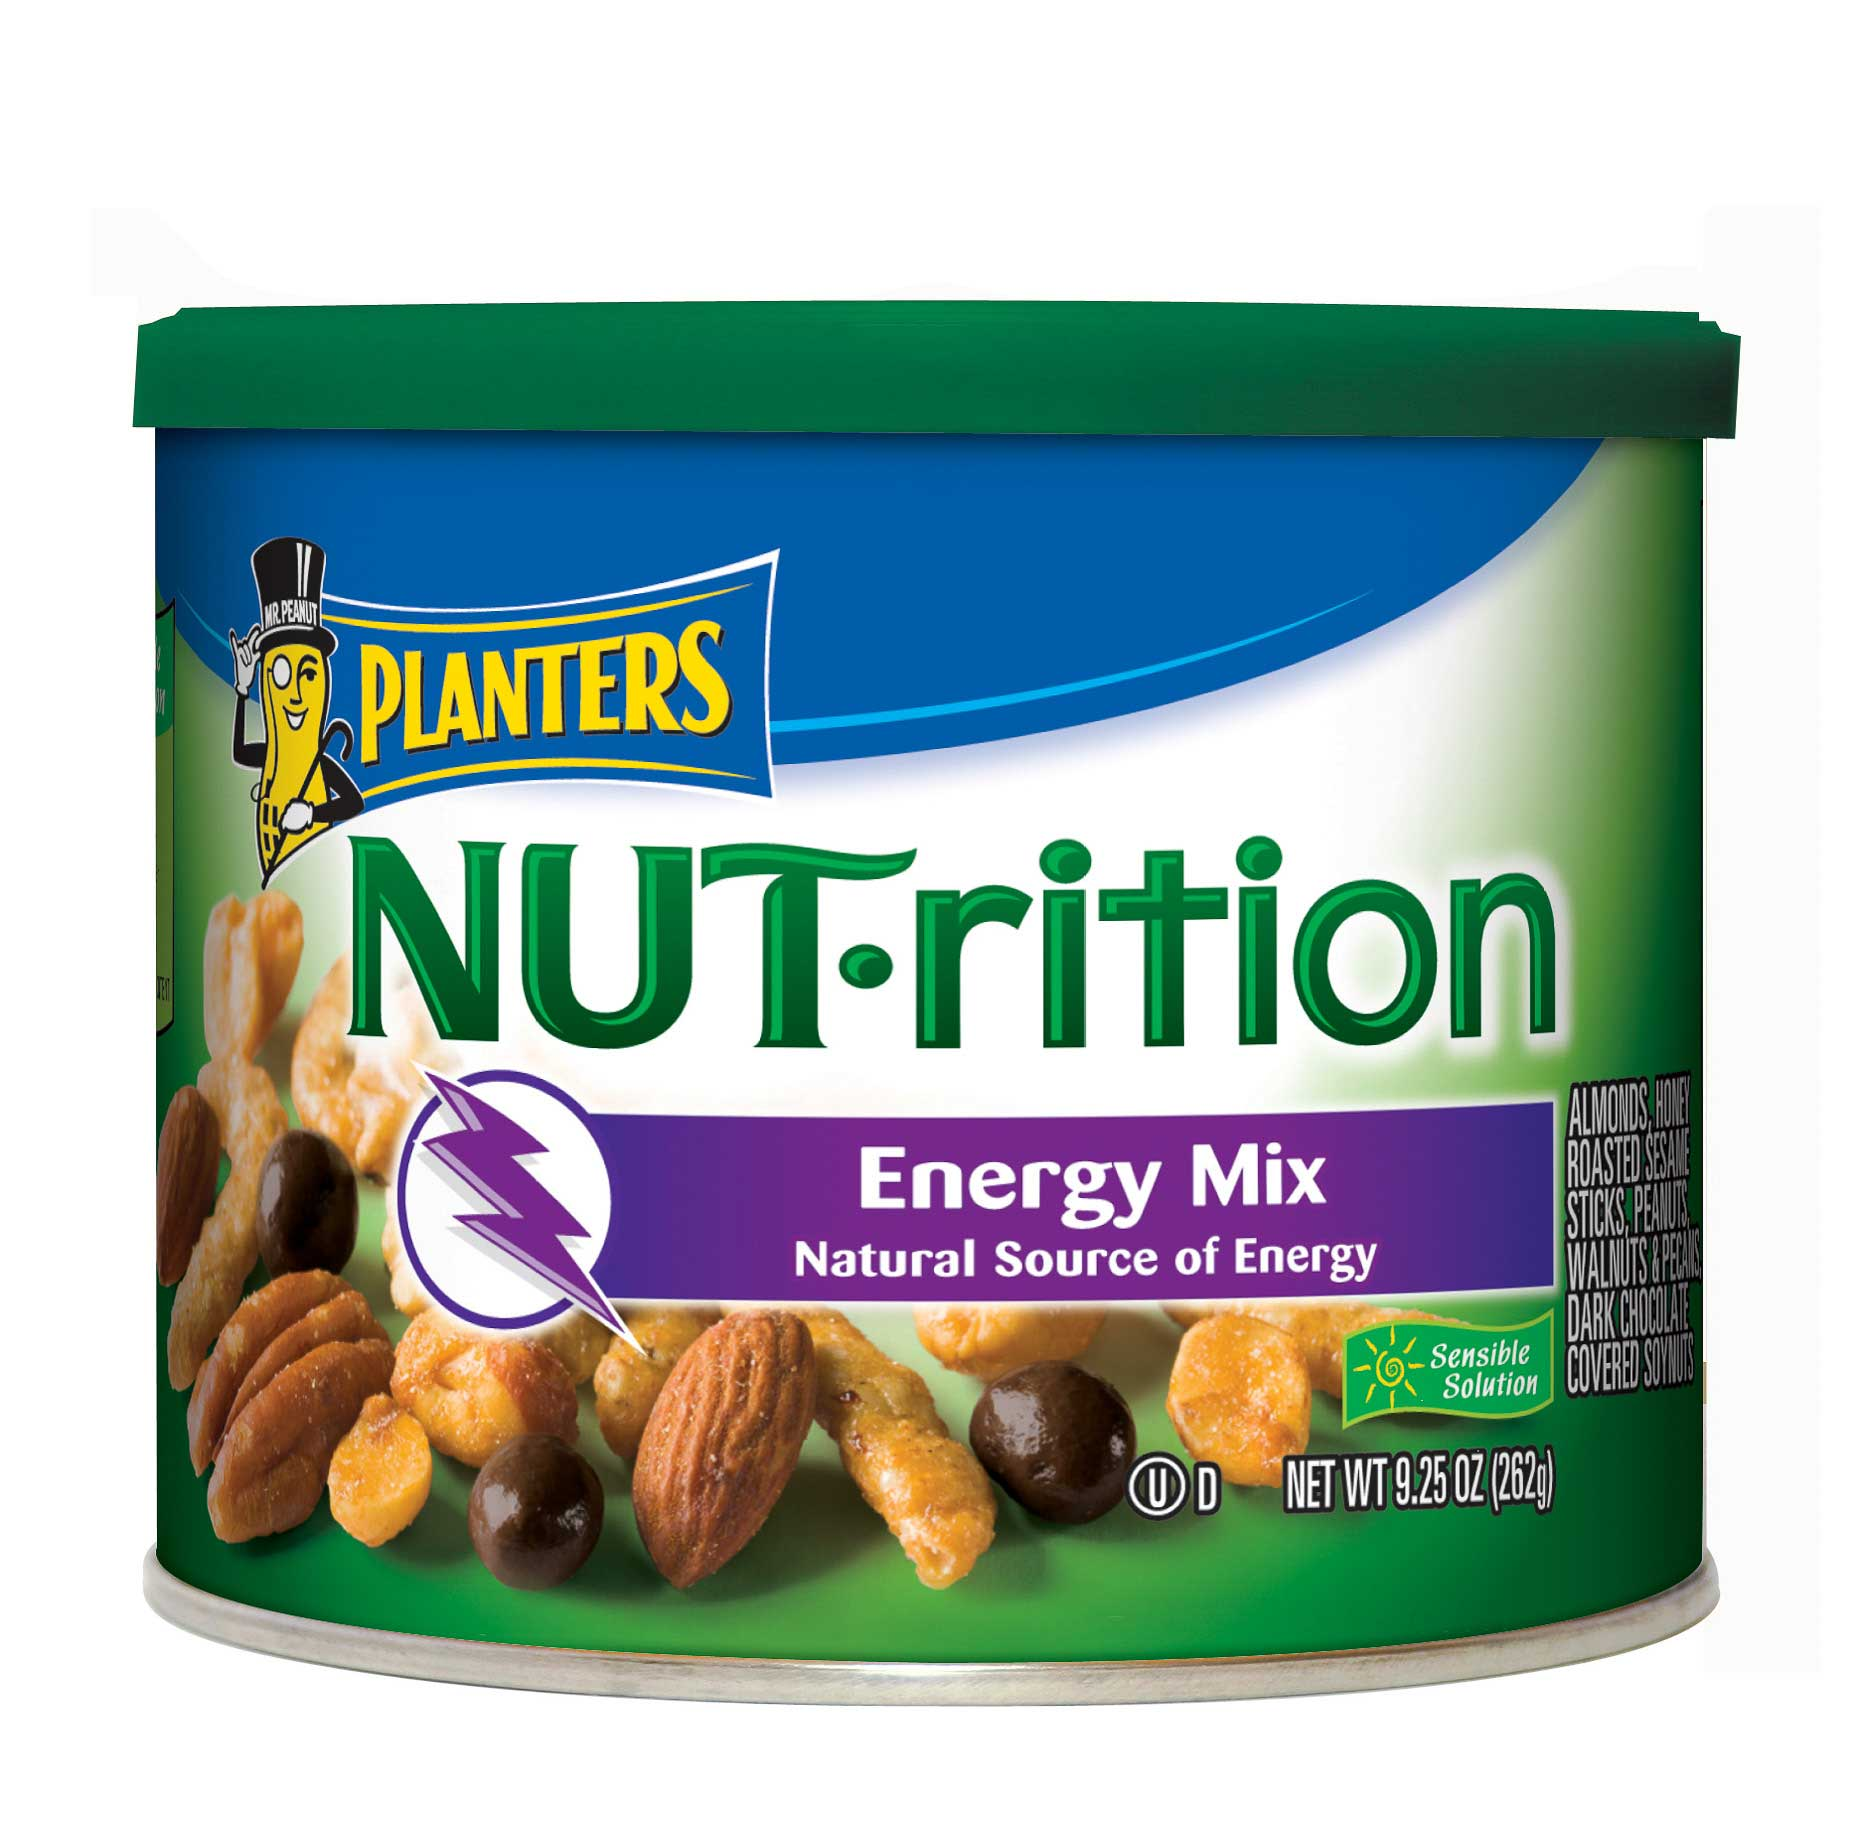 Kraft - Planters - NUT-rition - Packaging - Spring Design Partners